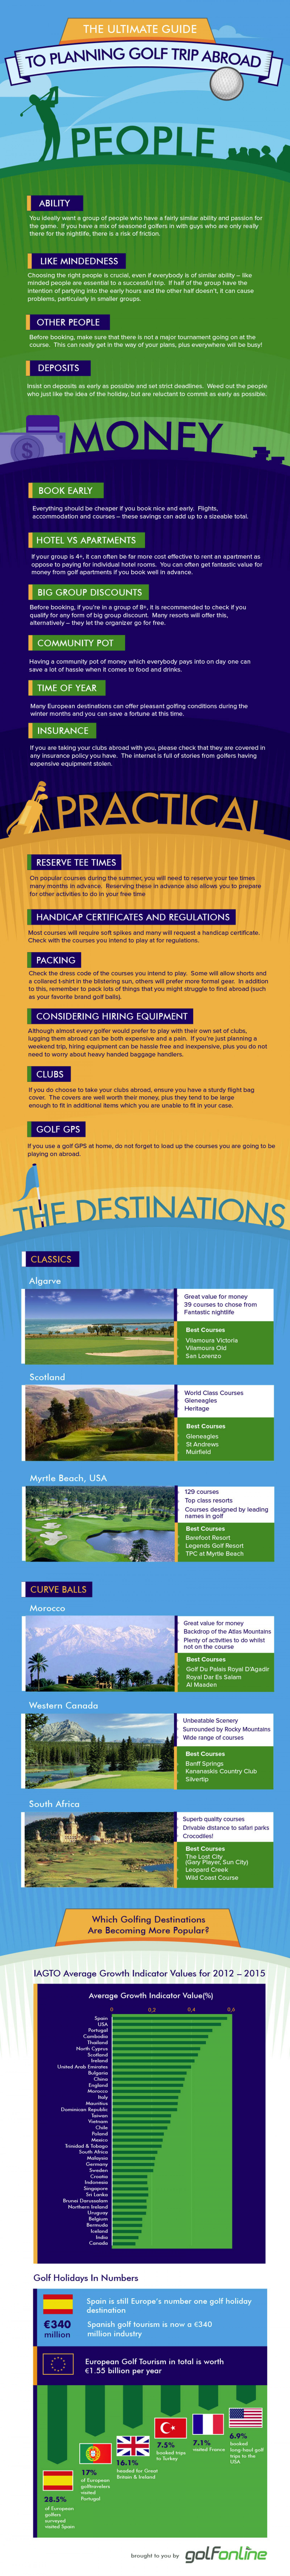 Guide To Planning a Golf Trip Abroad Infographic